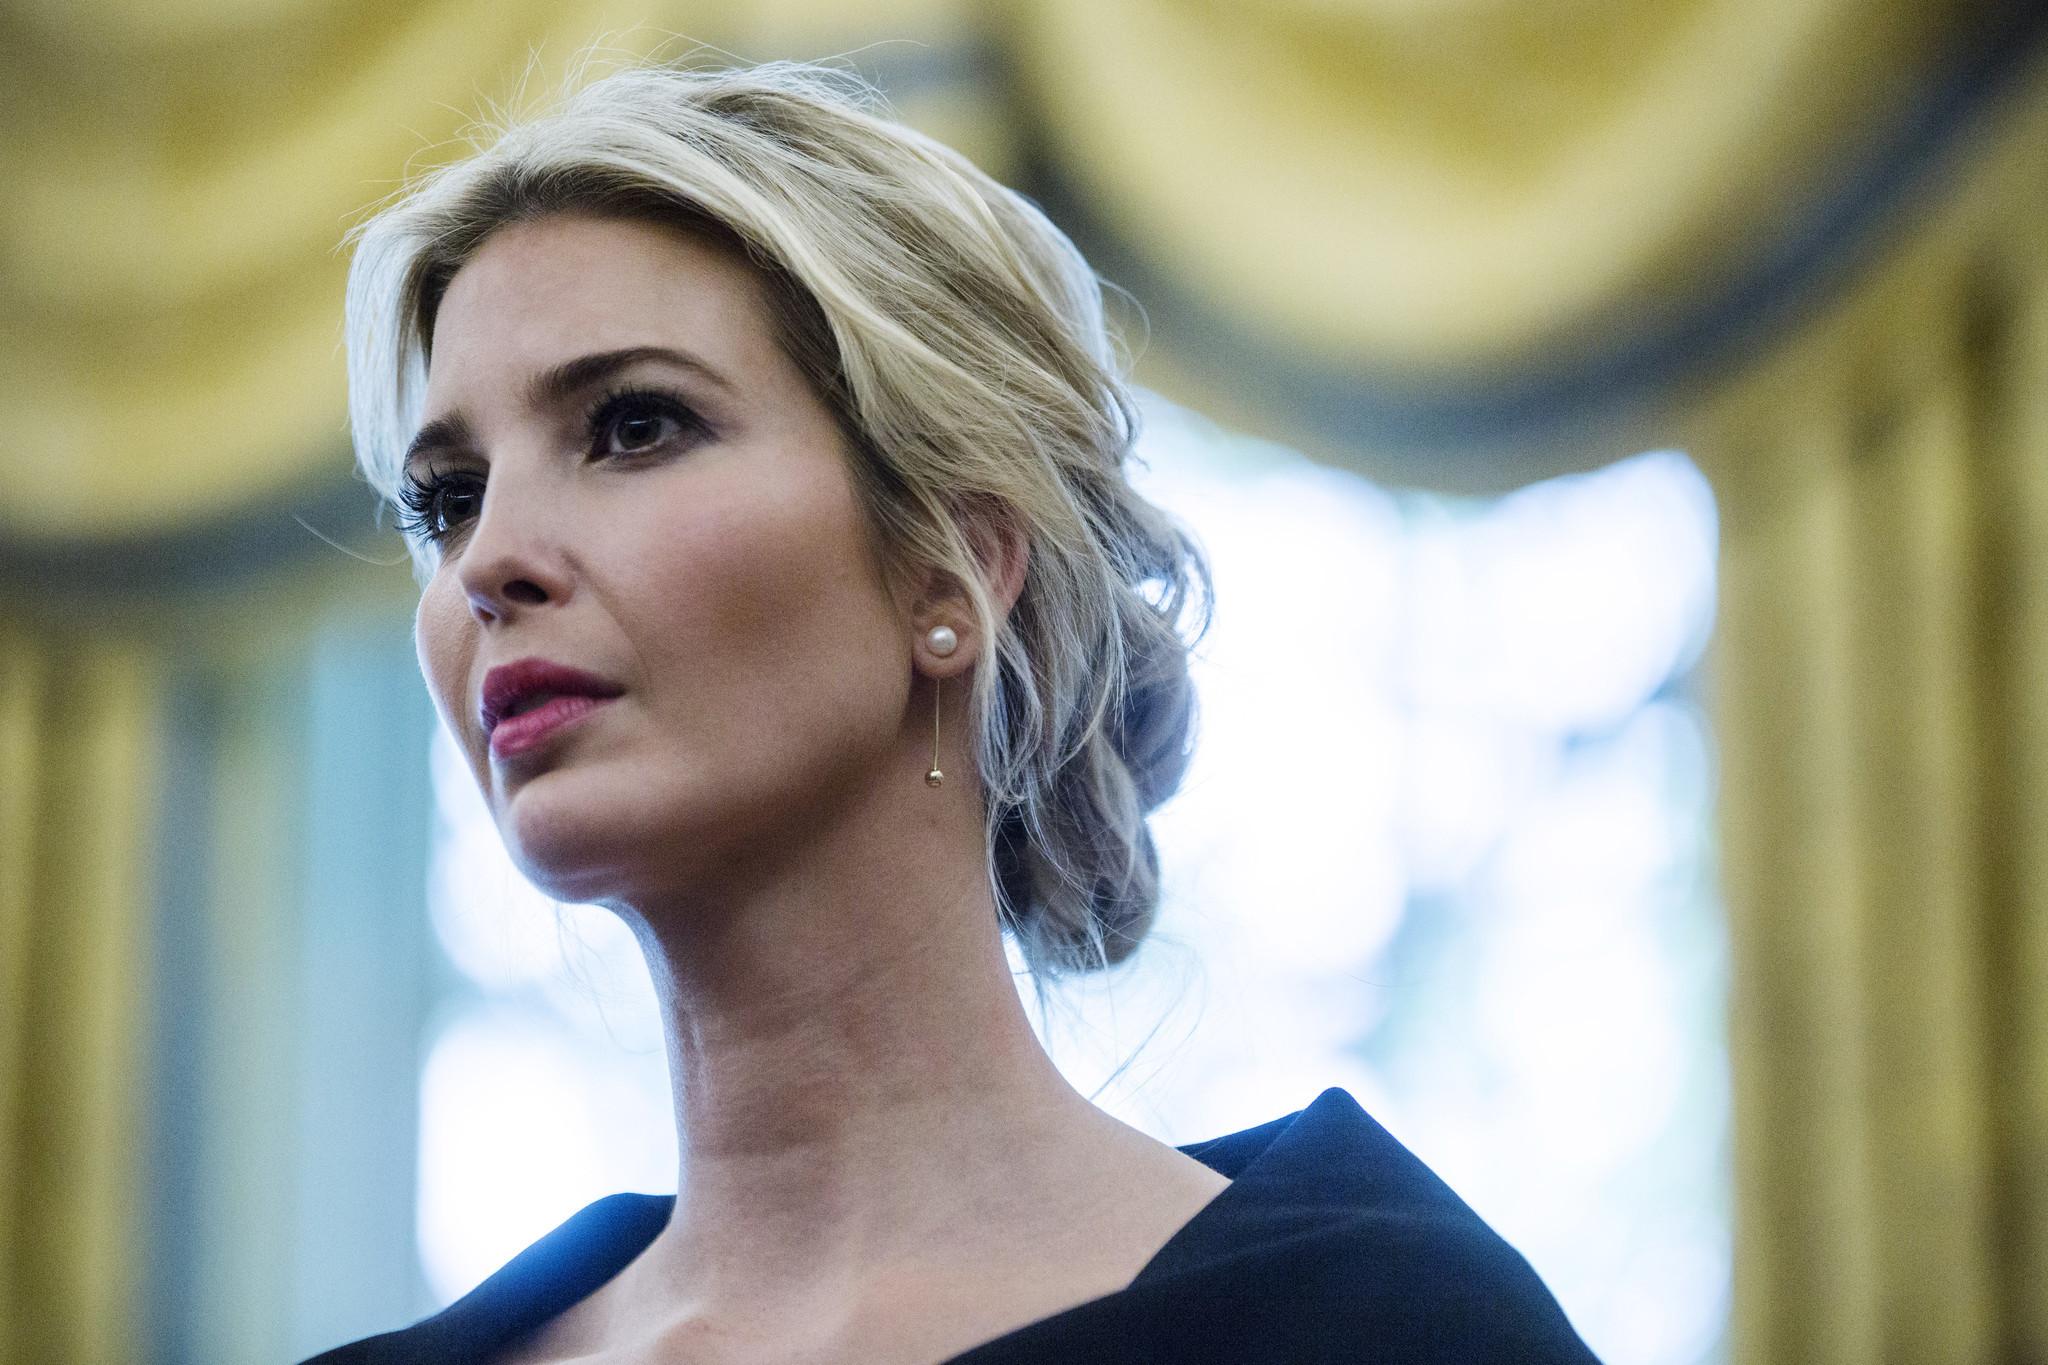 Ivanka Trump used personal email account to send emails about government business